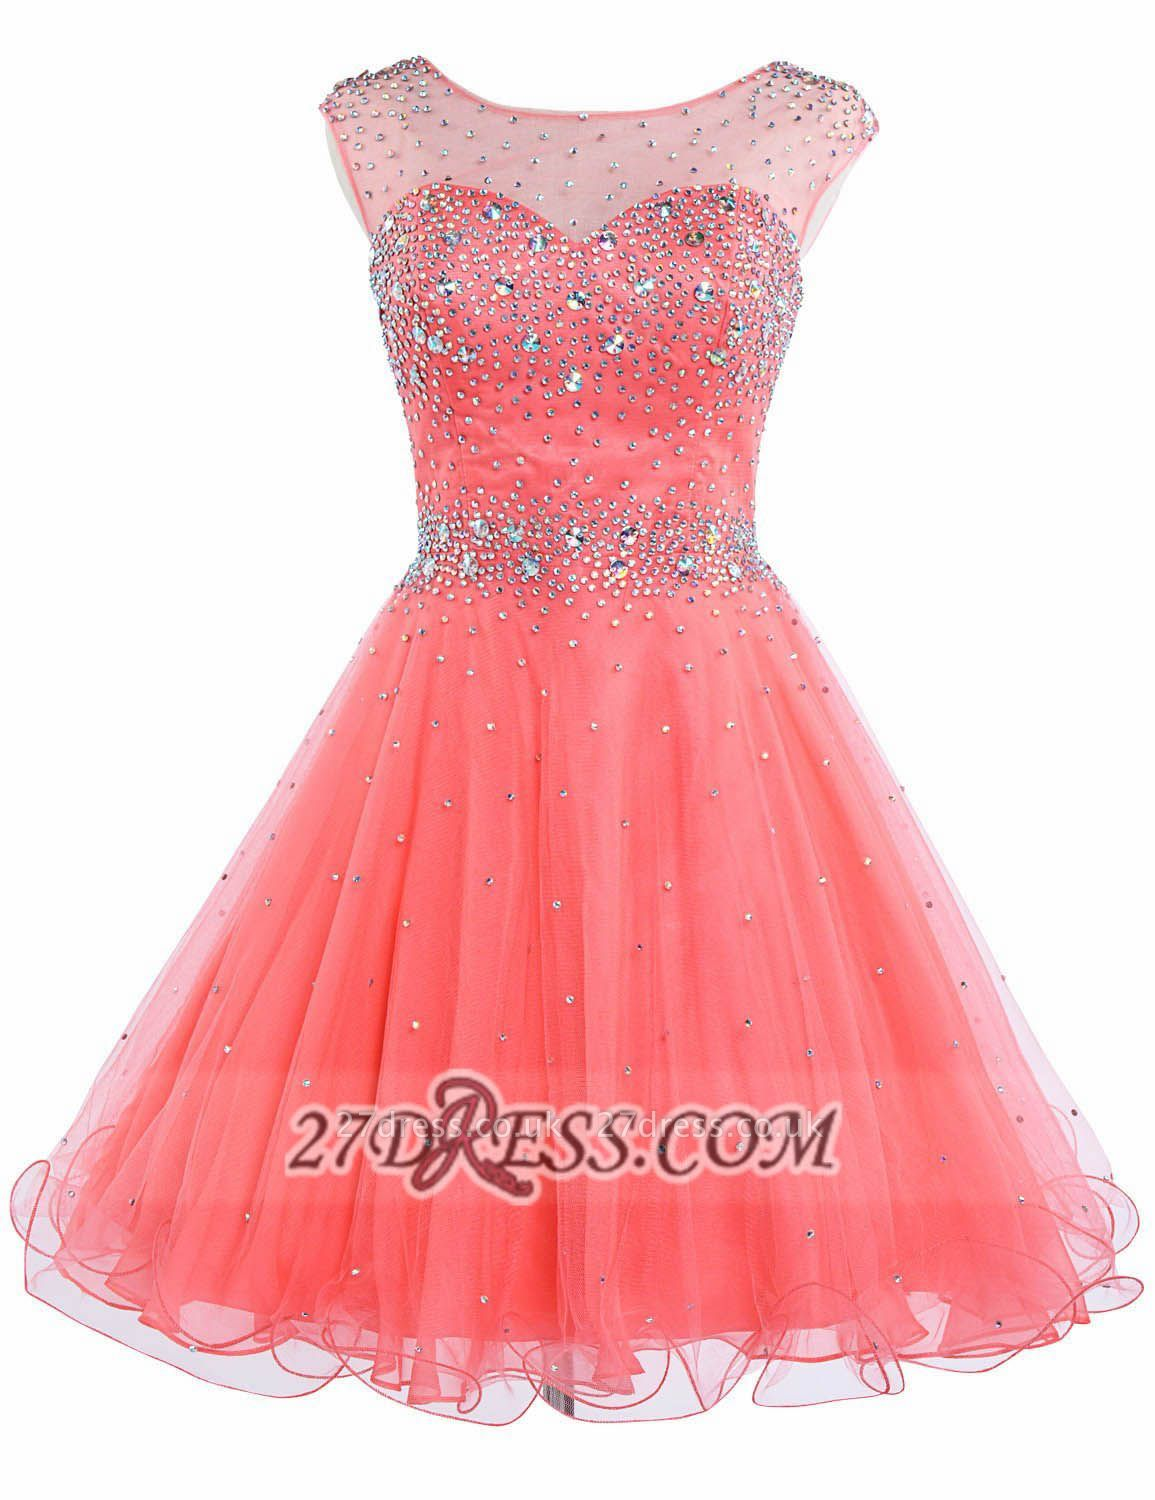 Lovely Illusion Cap Sleeve Short Homecoming Dress UK Beadings Crystals Zipper Cocktail Gown